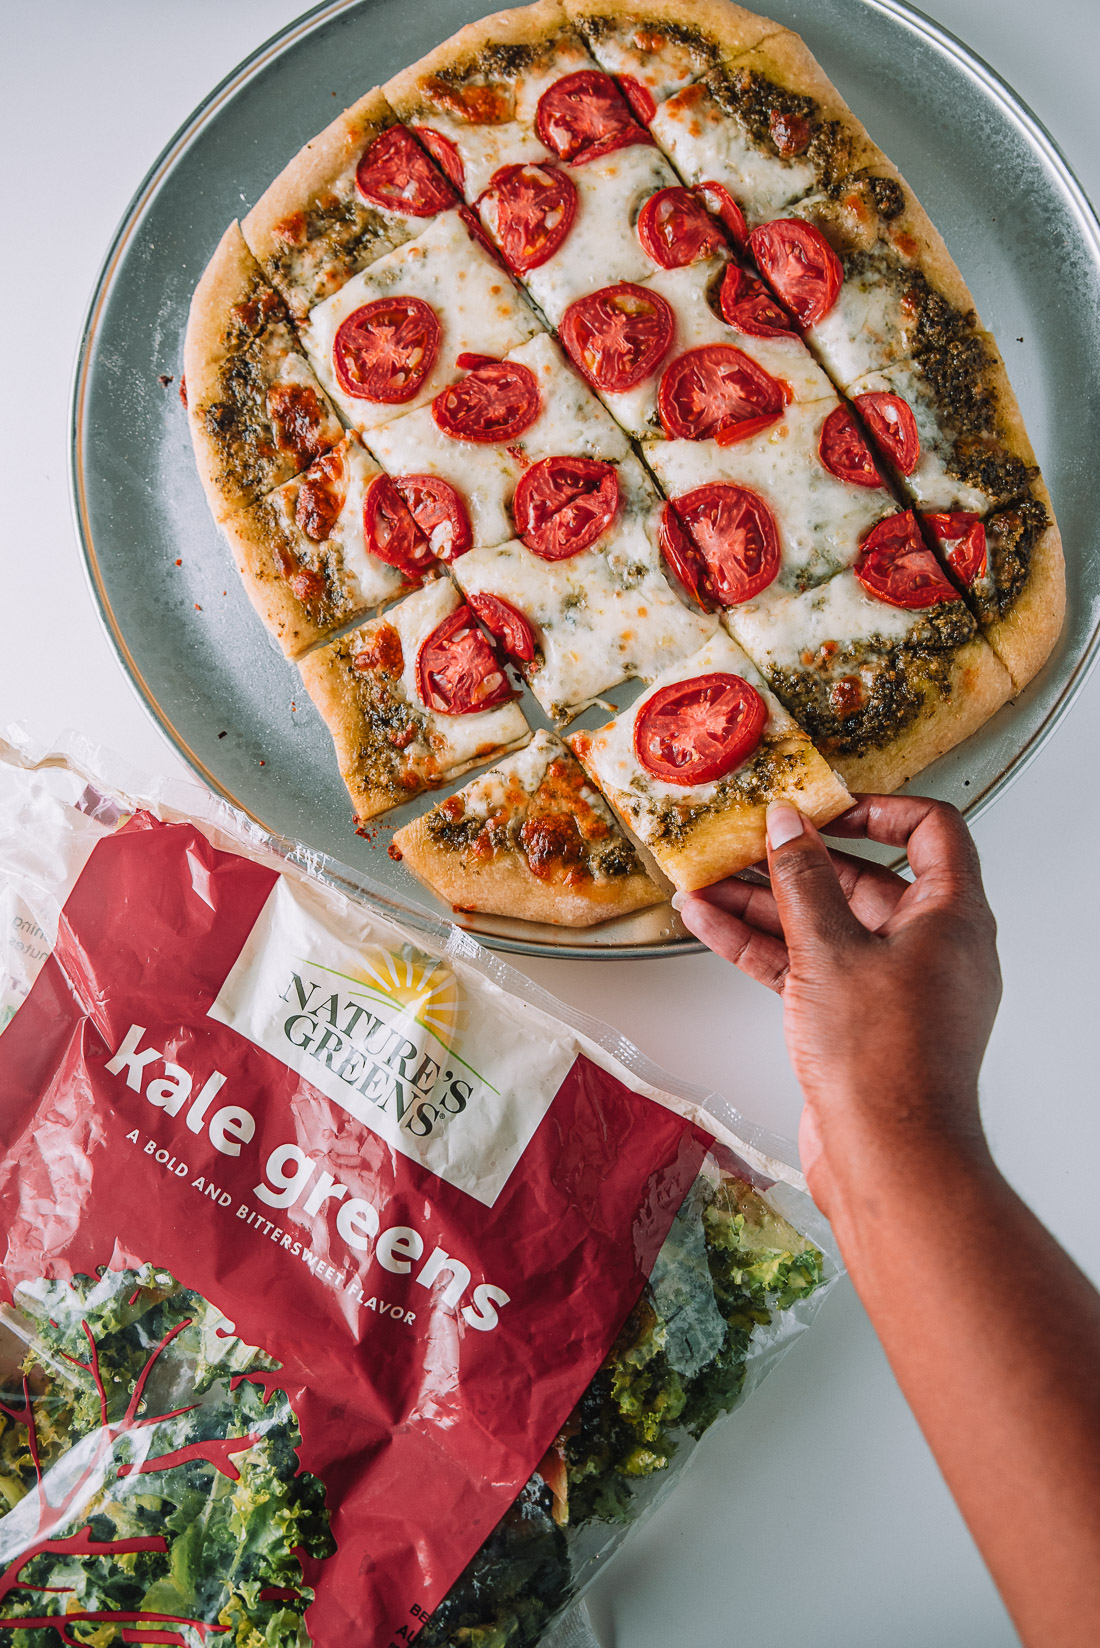 Kale-Pesto-Pizza-Natures-Greens-Mash-and-Spread